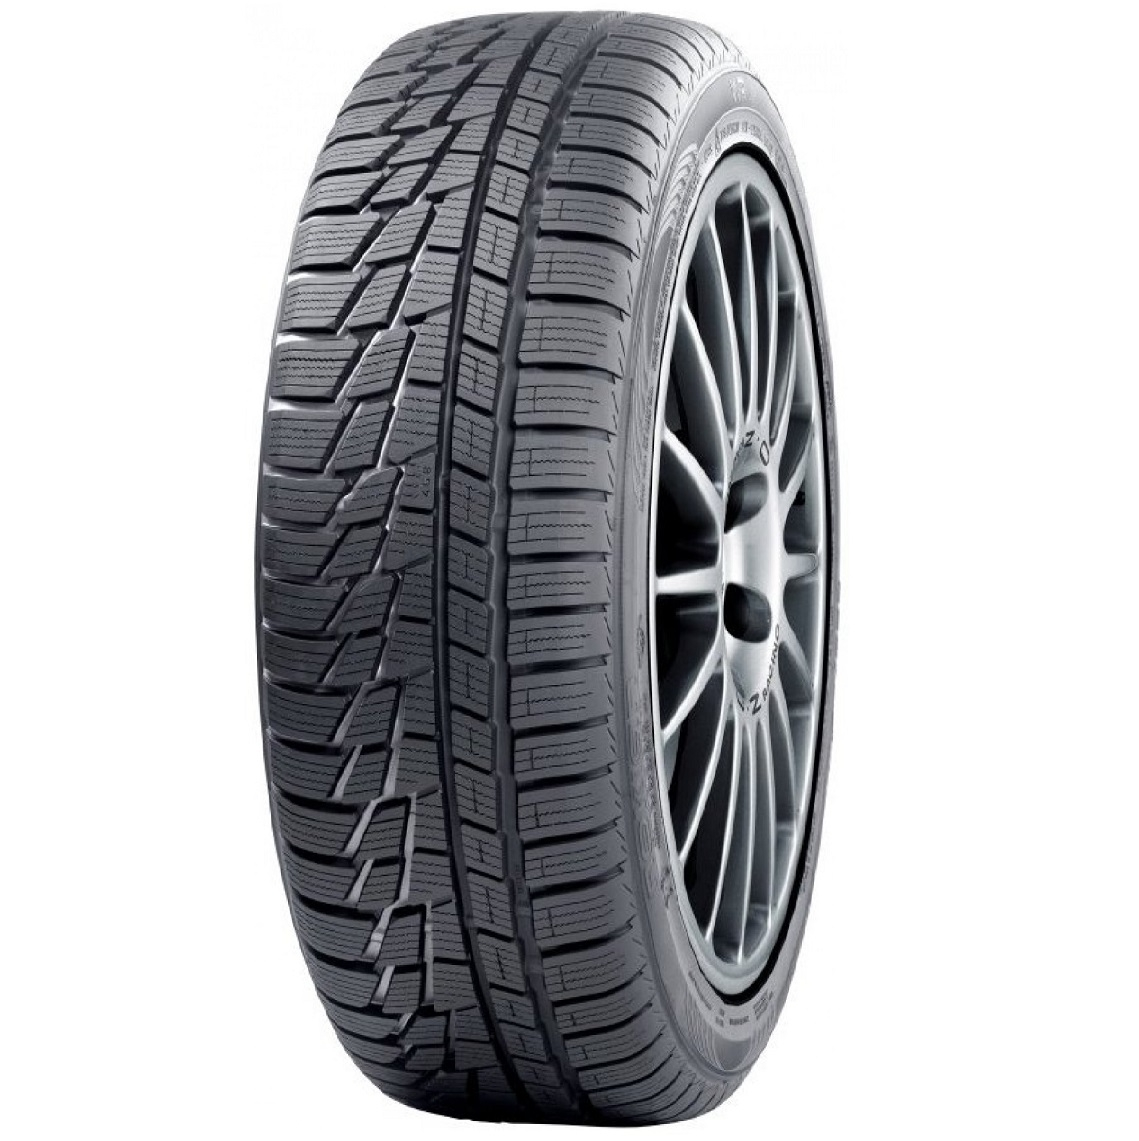 Anvelopa all seasons NOKIAN 205/55R16